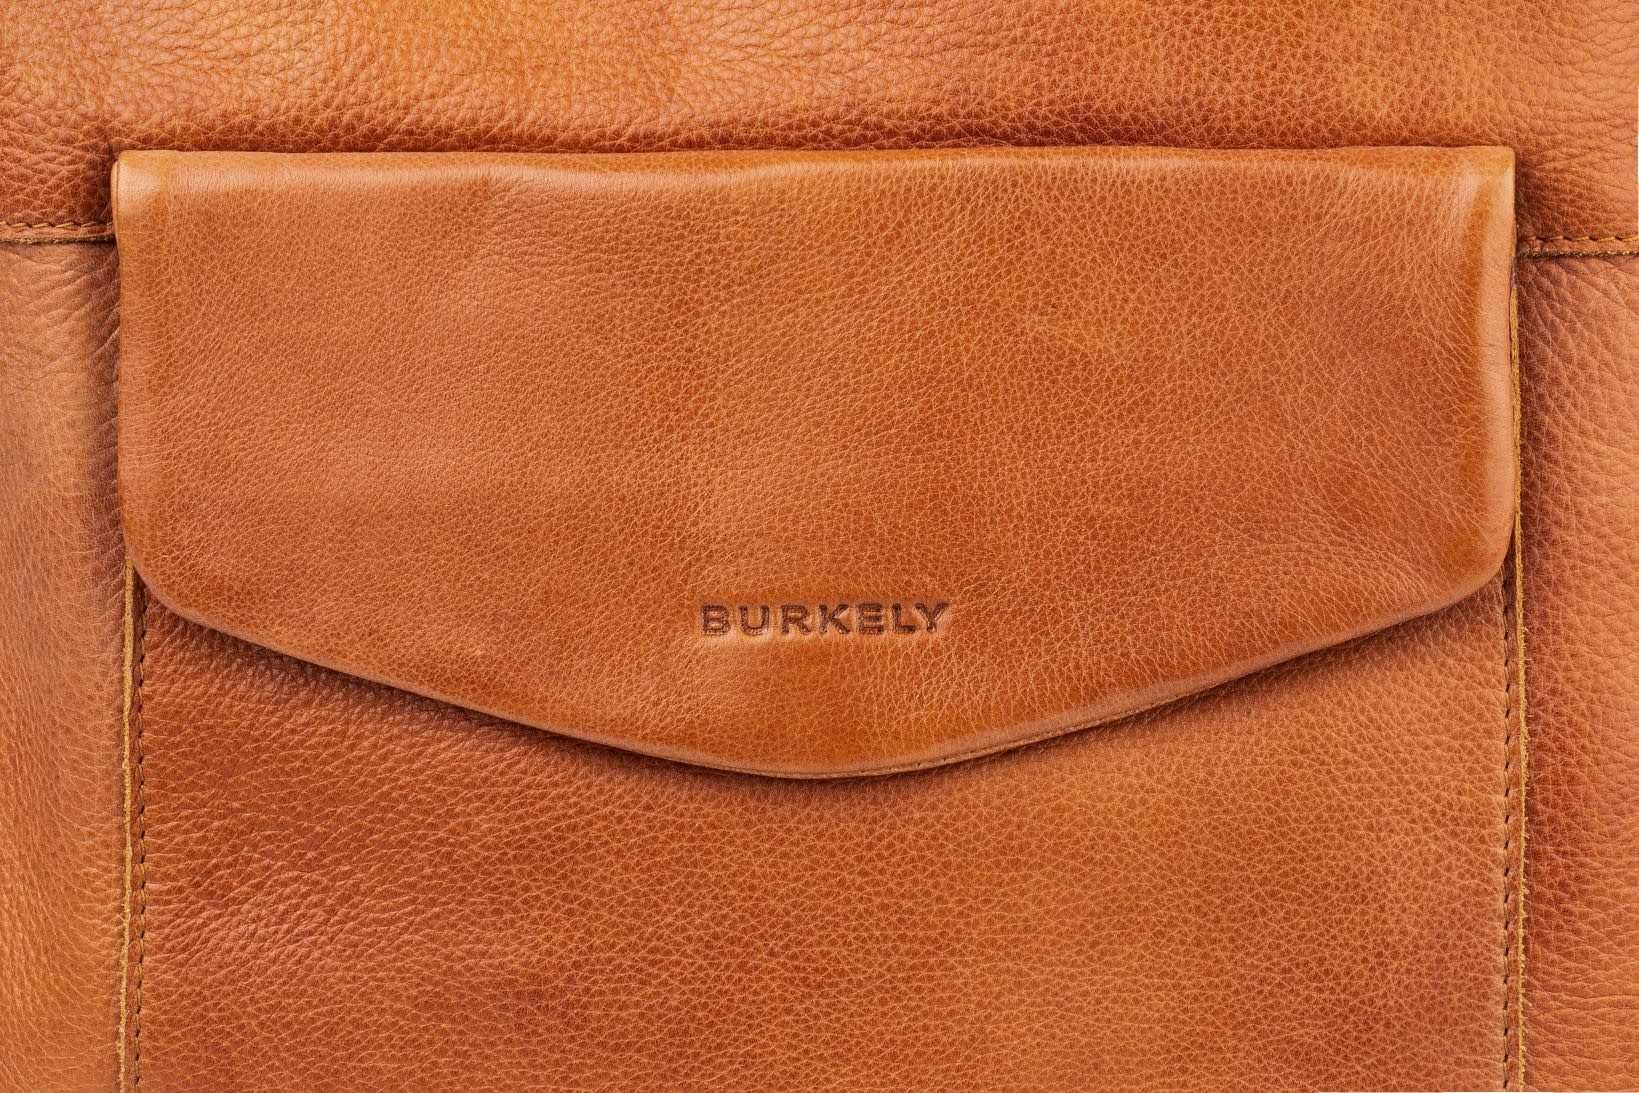 Burkely Just Jackie - Crossover Round - Cognac